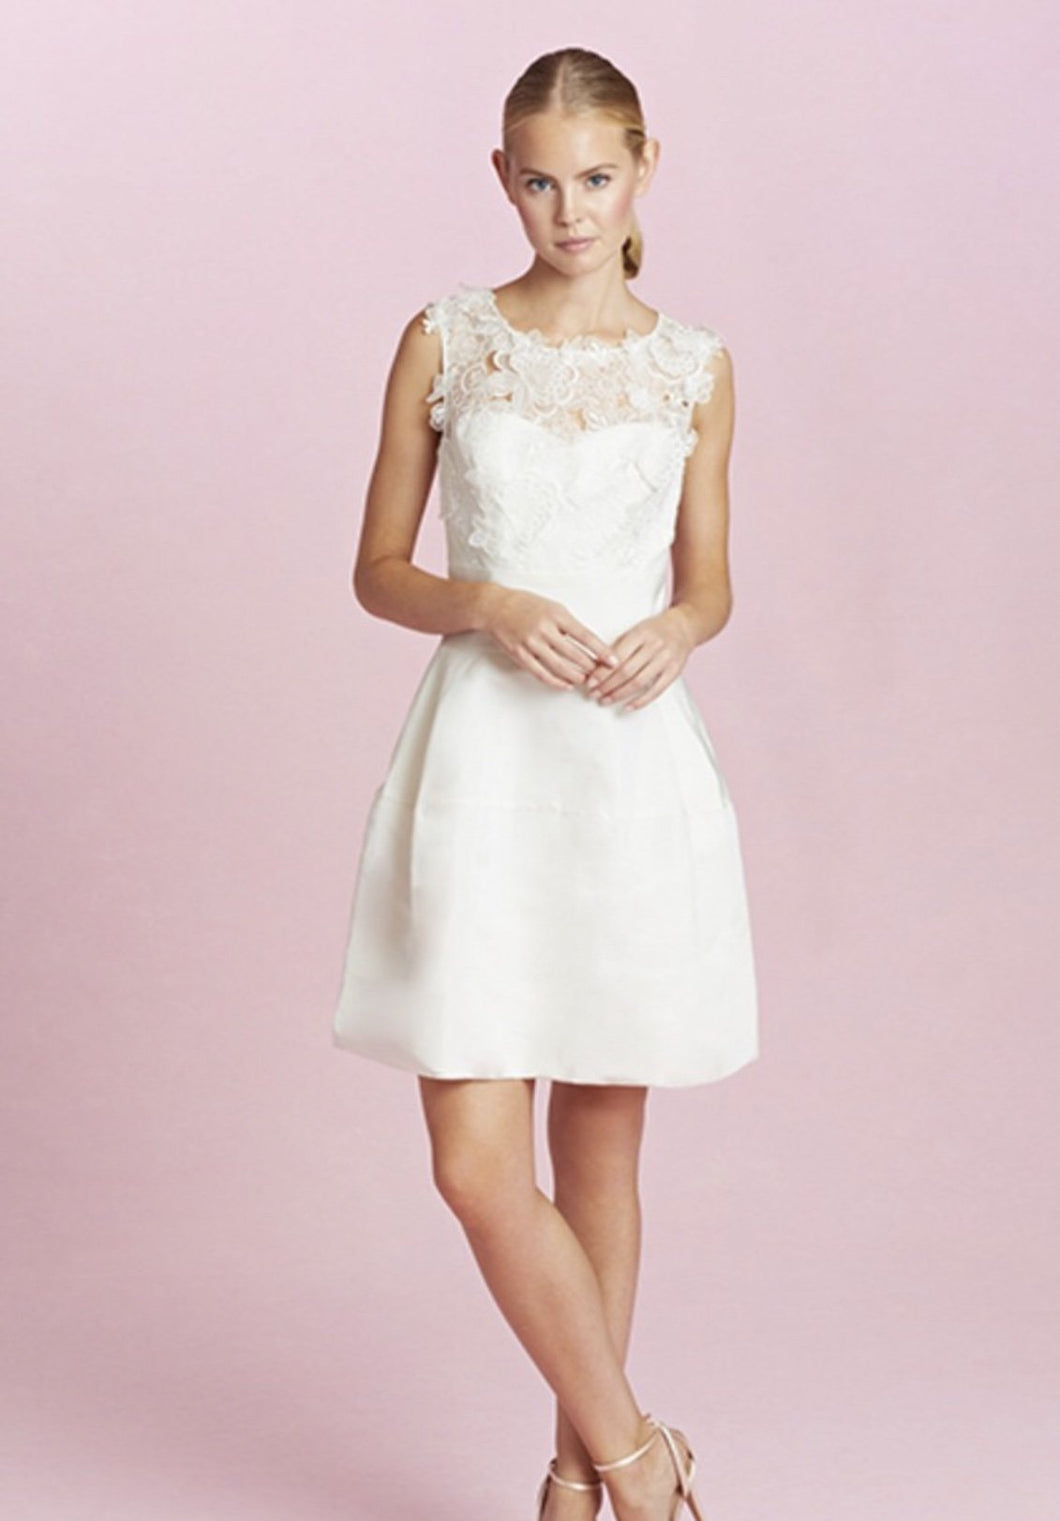 Oscar De La Renta 'Catherine Embroidered Silk Faille' size 4 used wedding dress front view on model